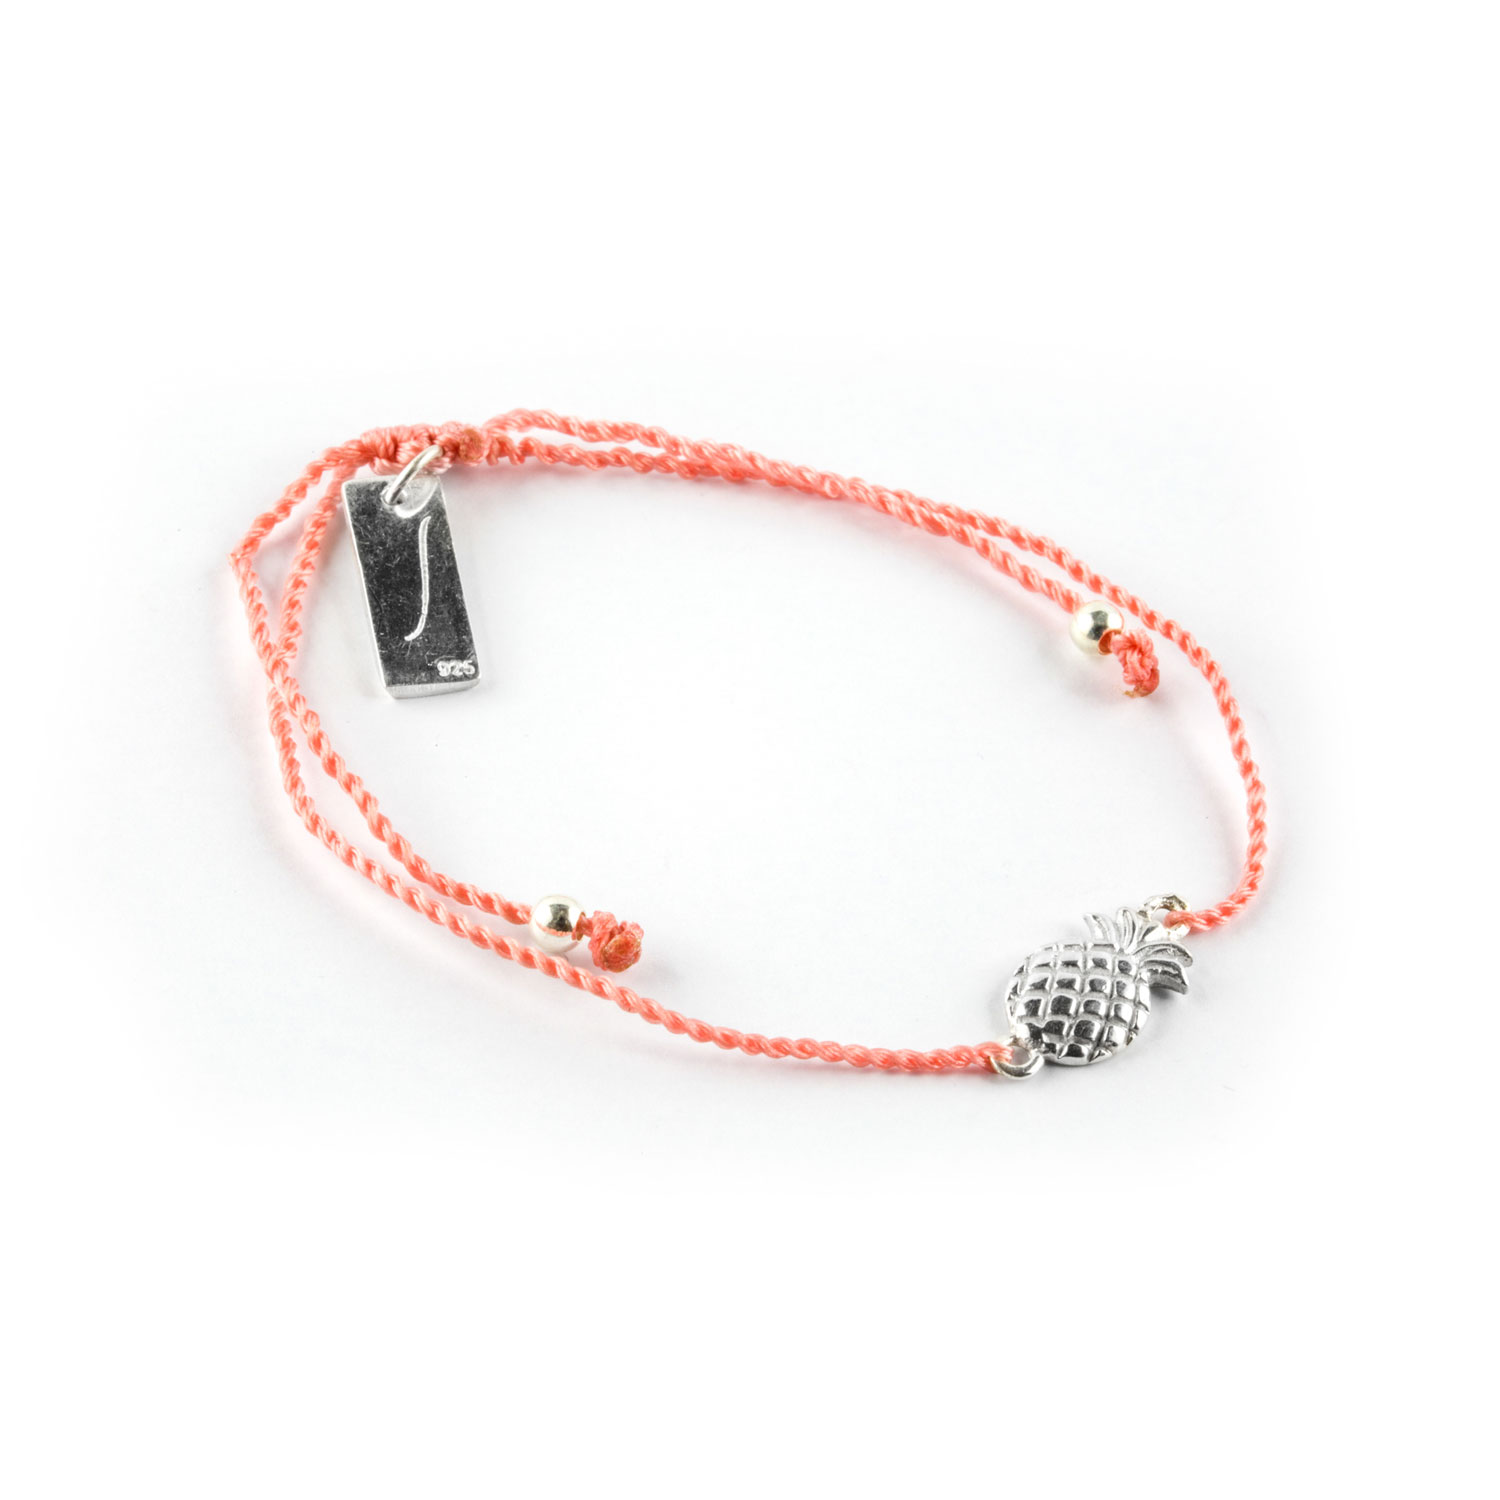 Child's orange cord bracelet with pineapple charm in silver